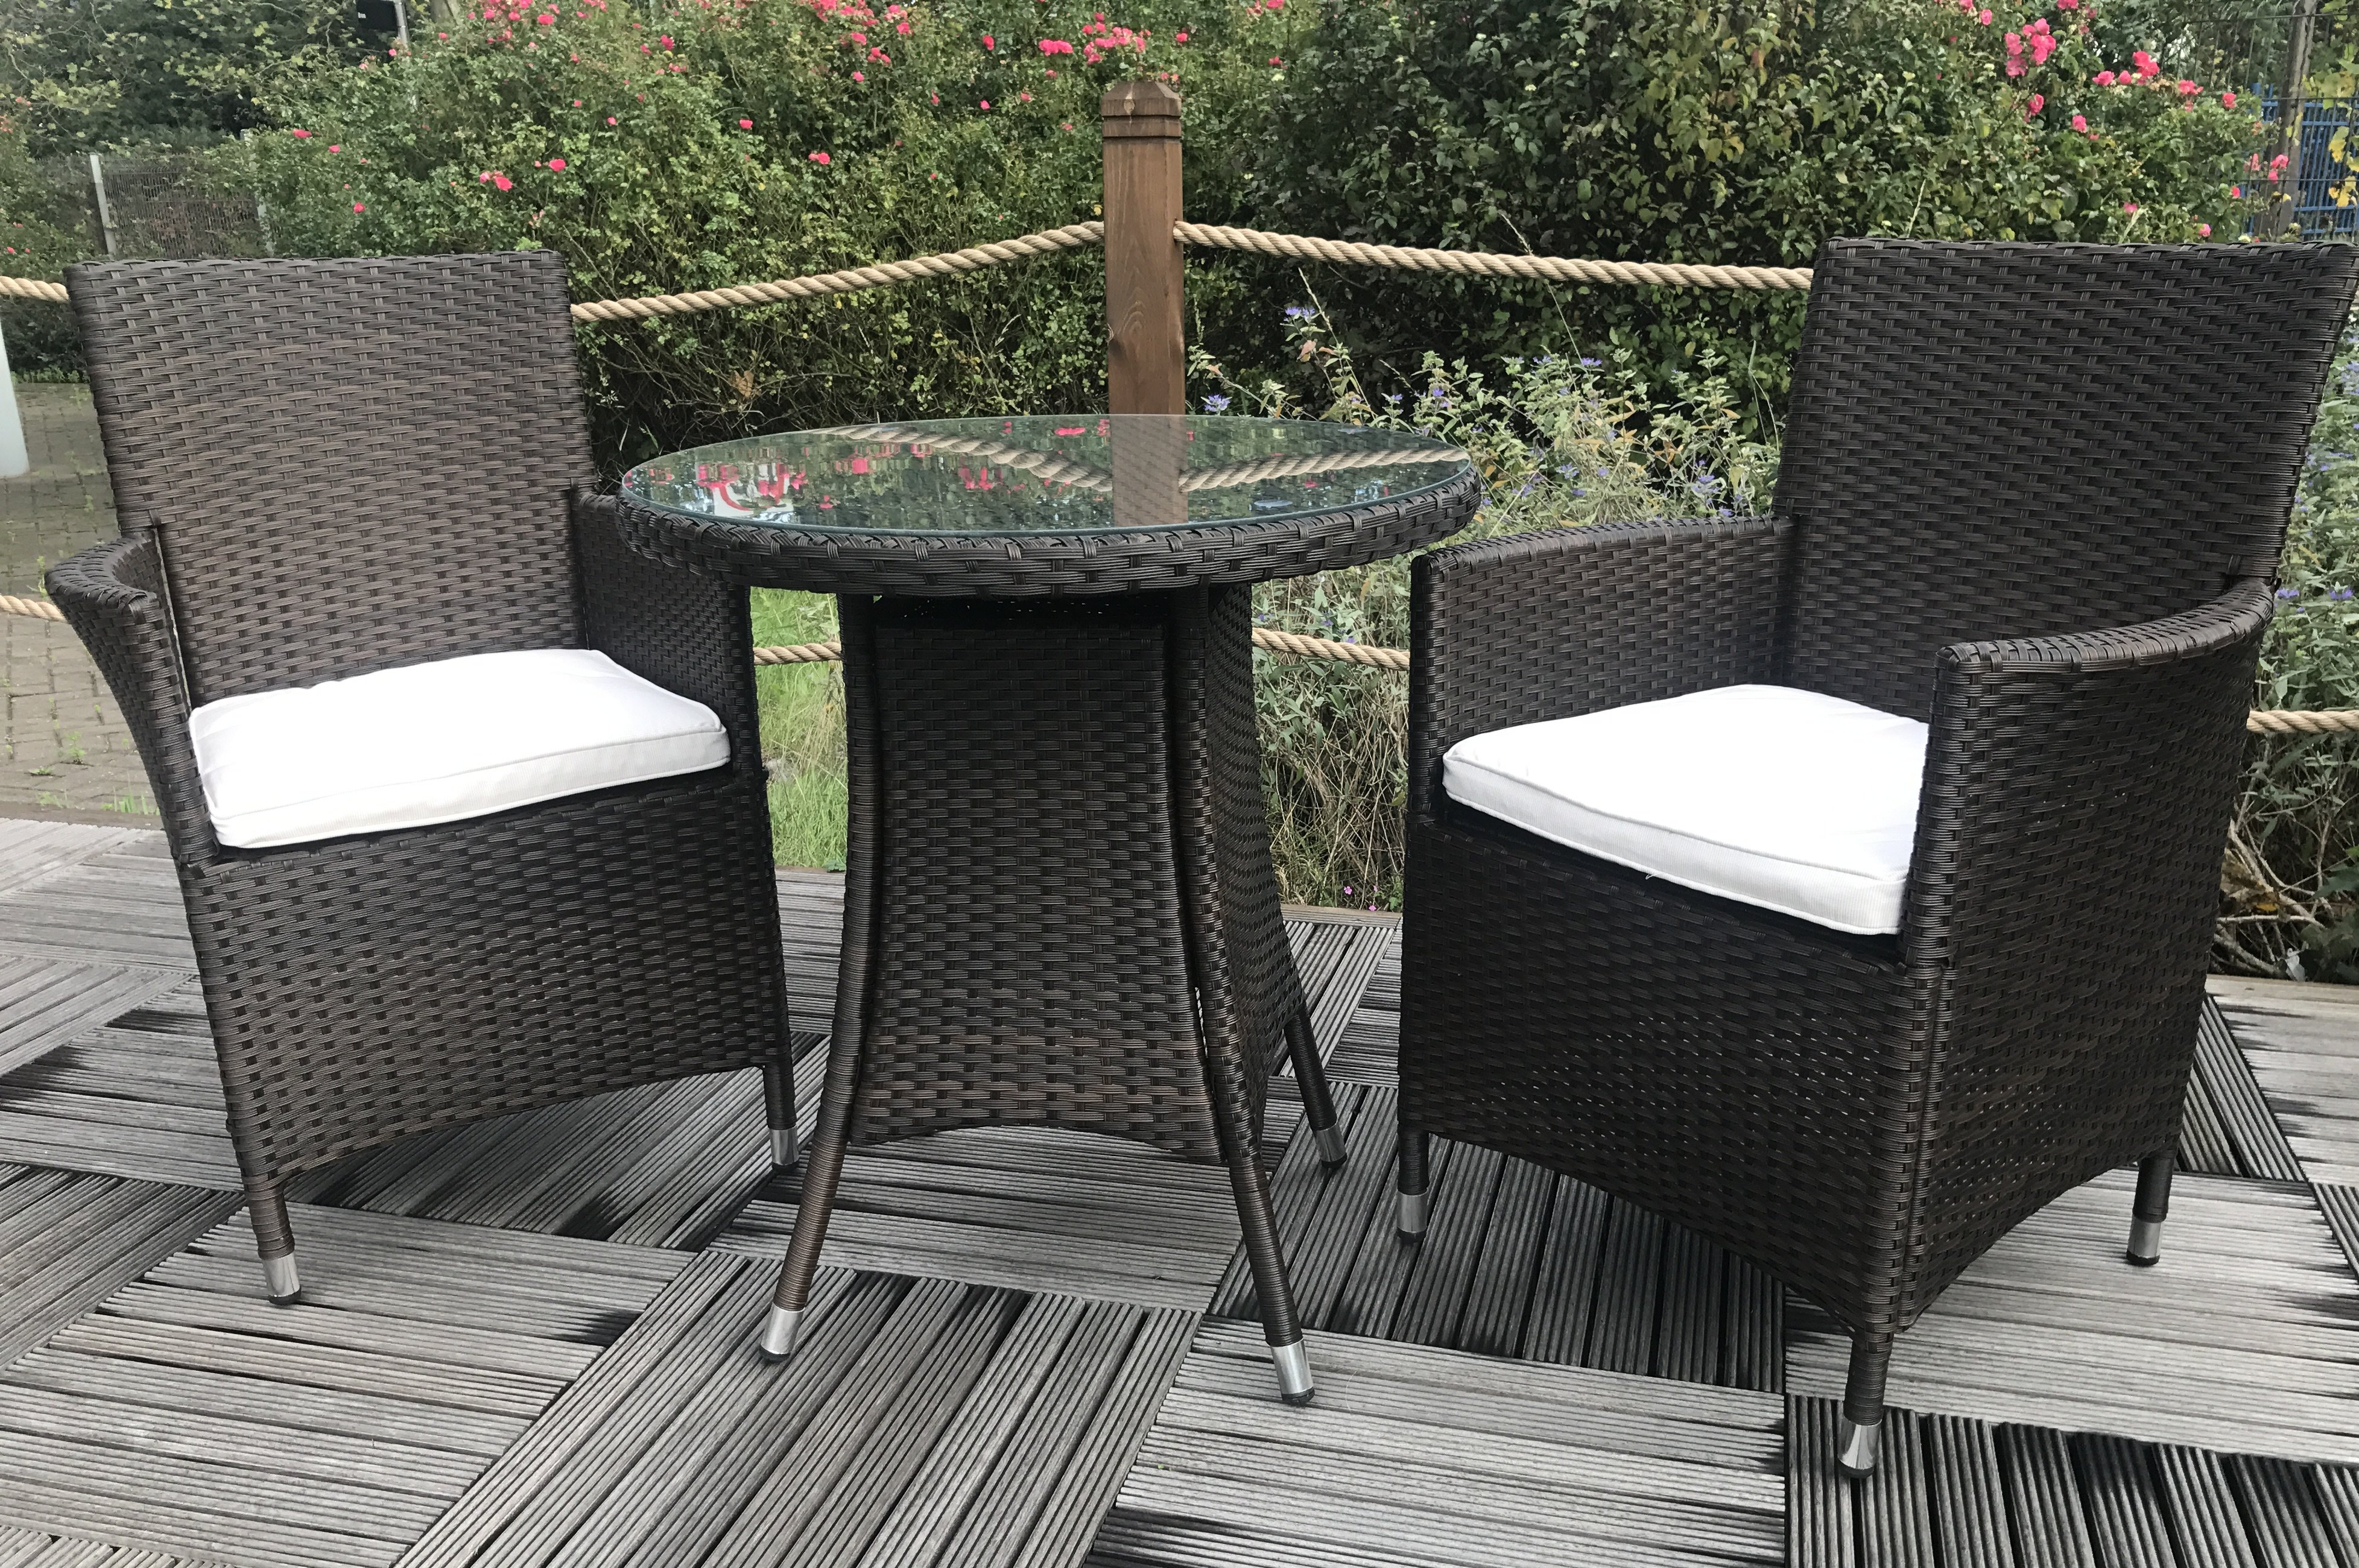 Termonde 2 Seater Bistro Set With Cushions With Regard To Most Popular Kinsler 3 Piece Bistro Sets (View 12 of 20)